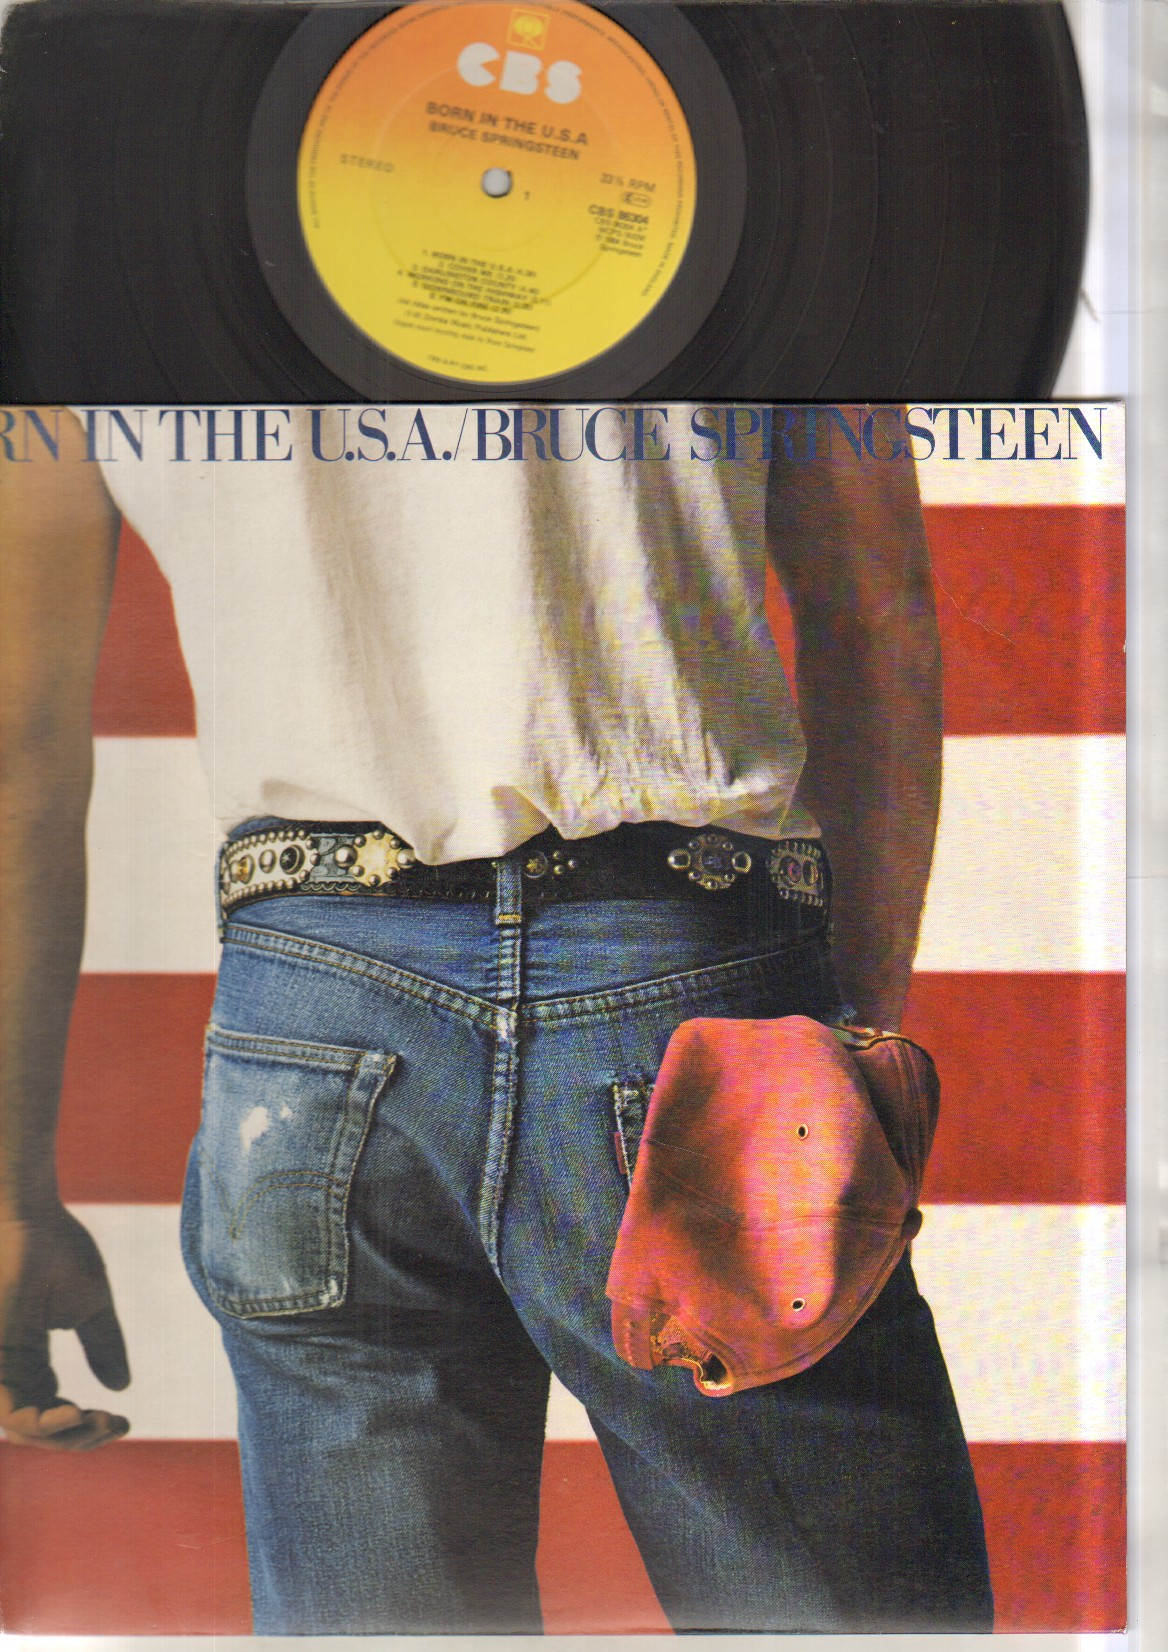 BRUCE SPRINGSTEEN - Born In The Usa Single